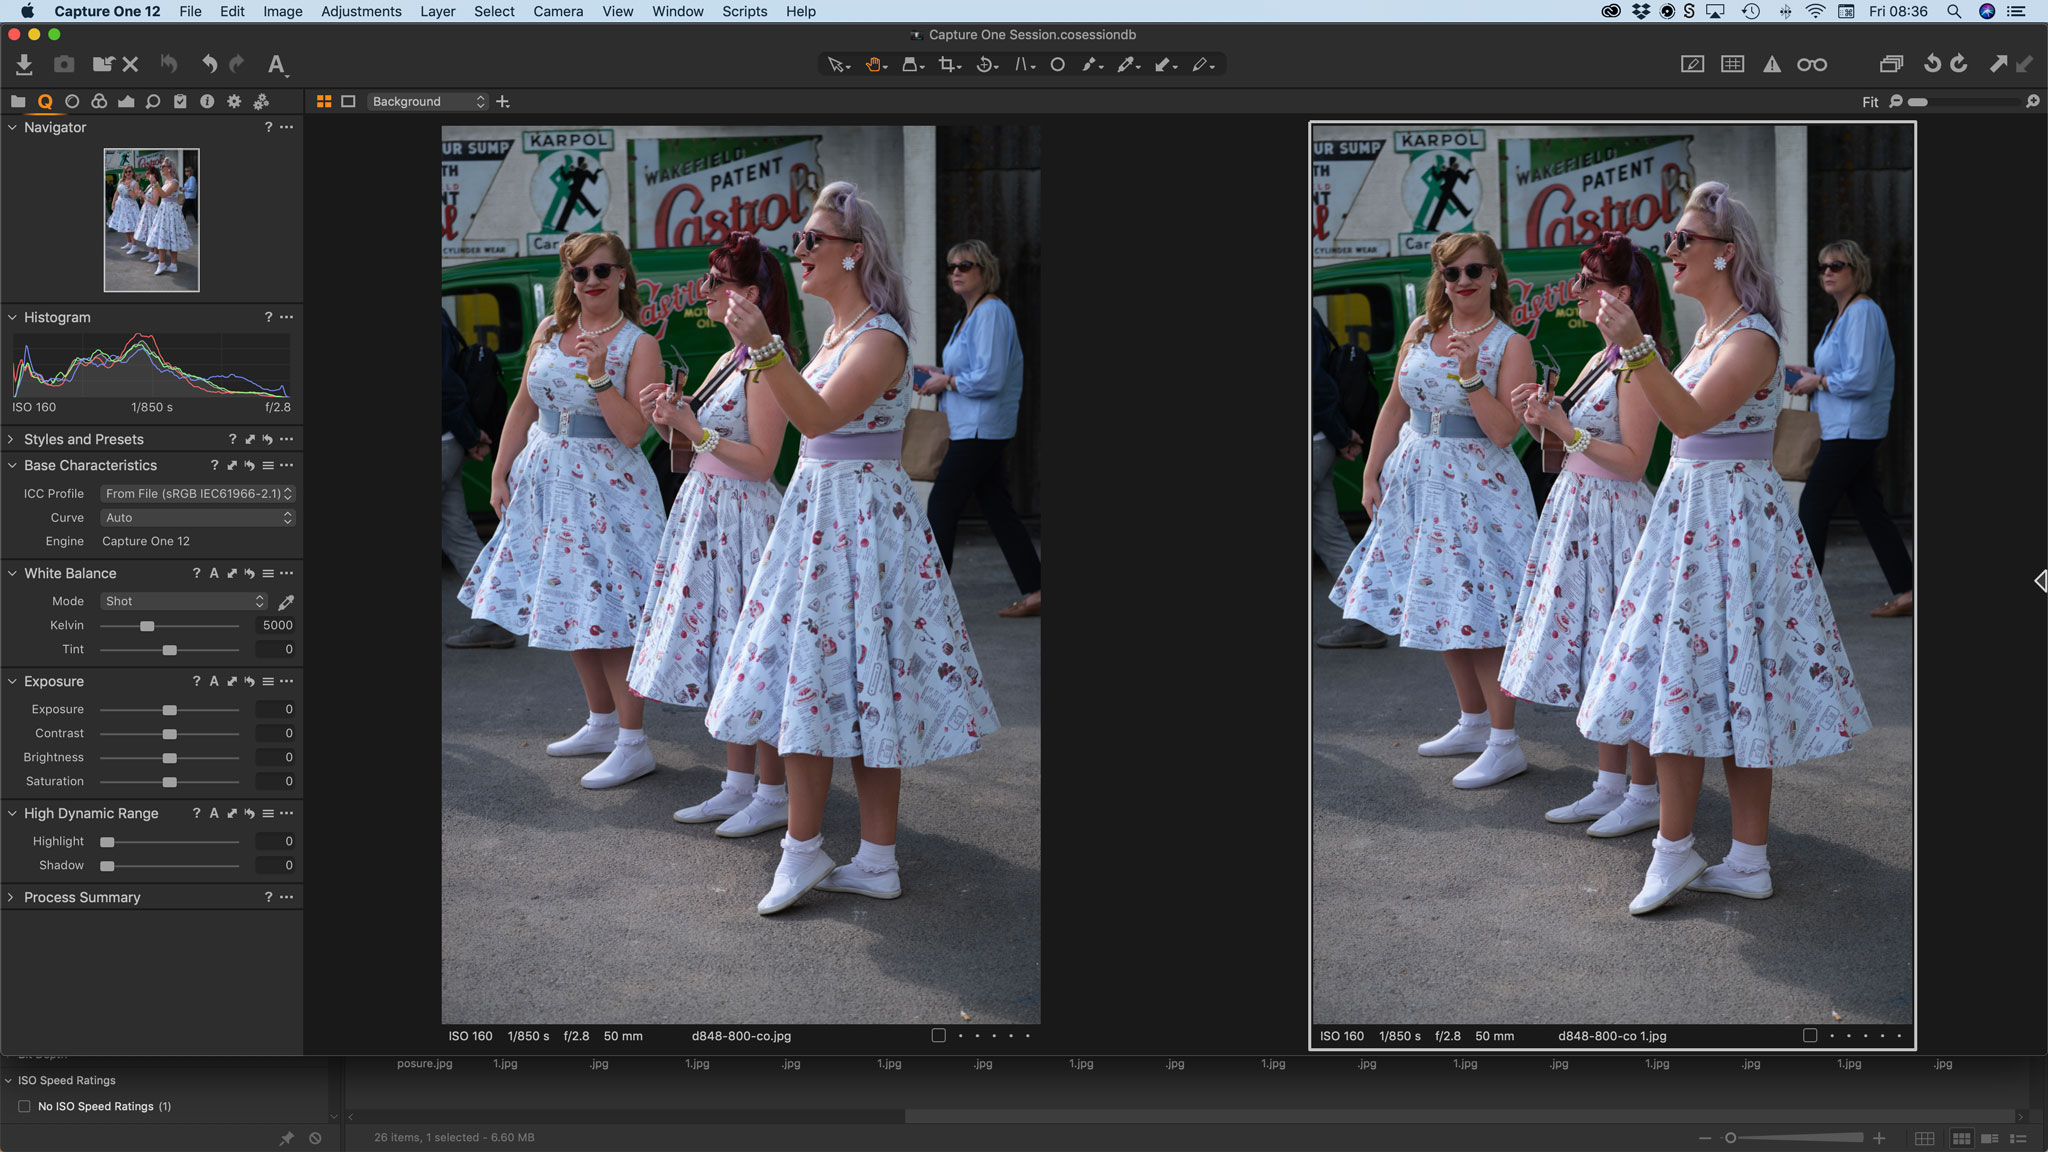 Capture One 12.1 X-Trans processing